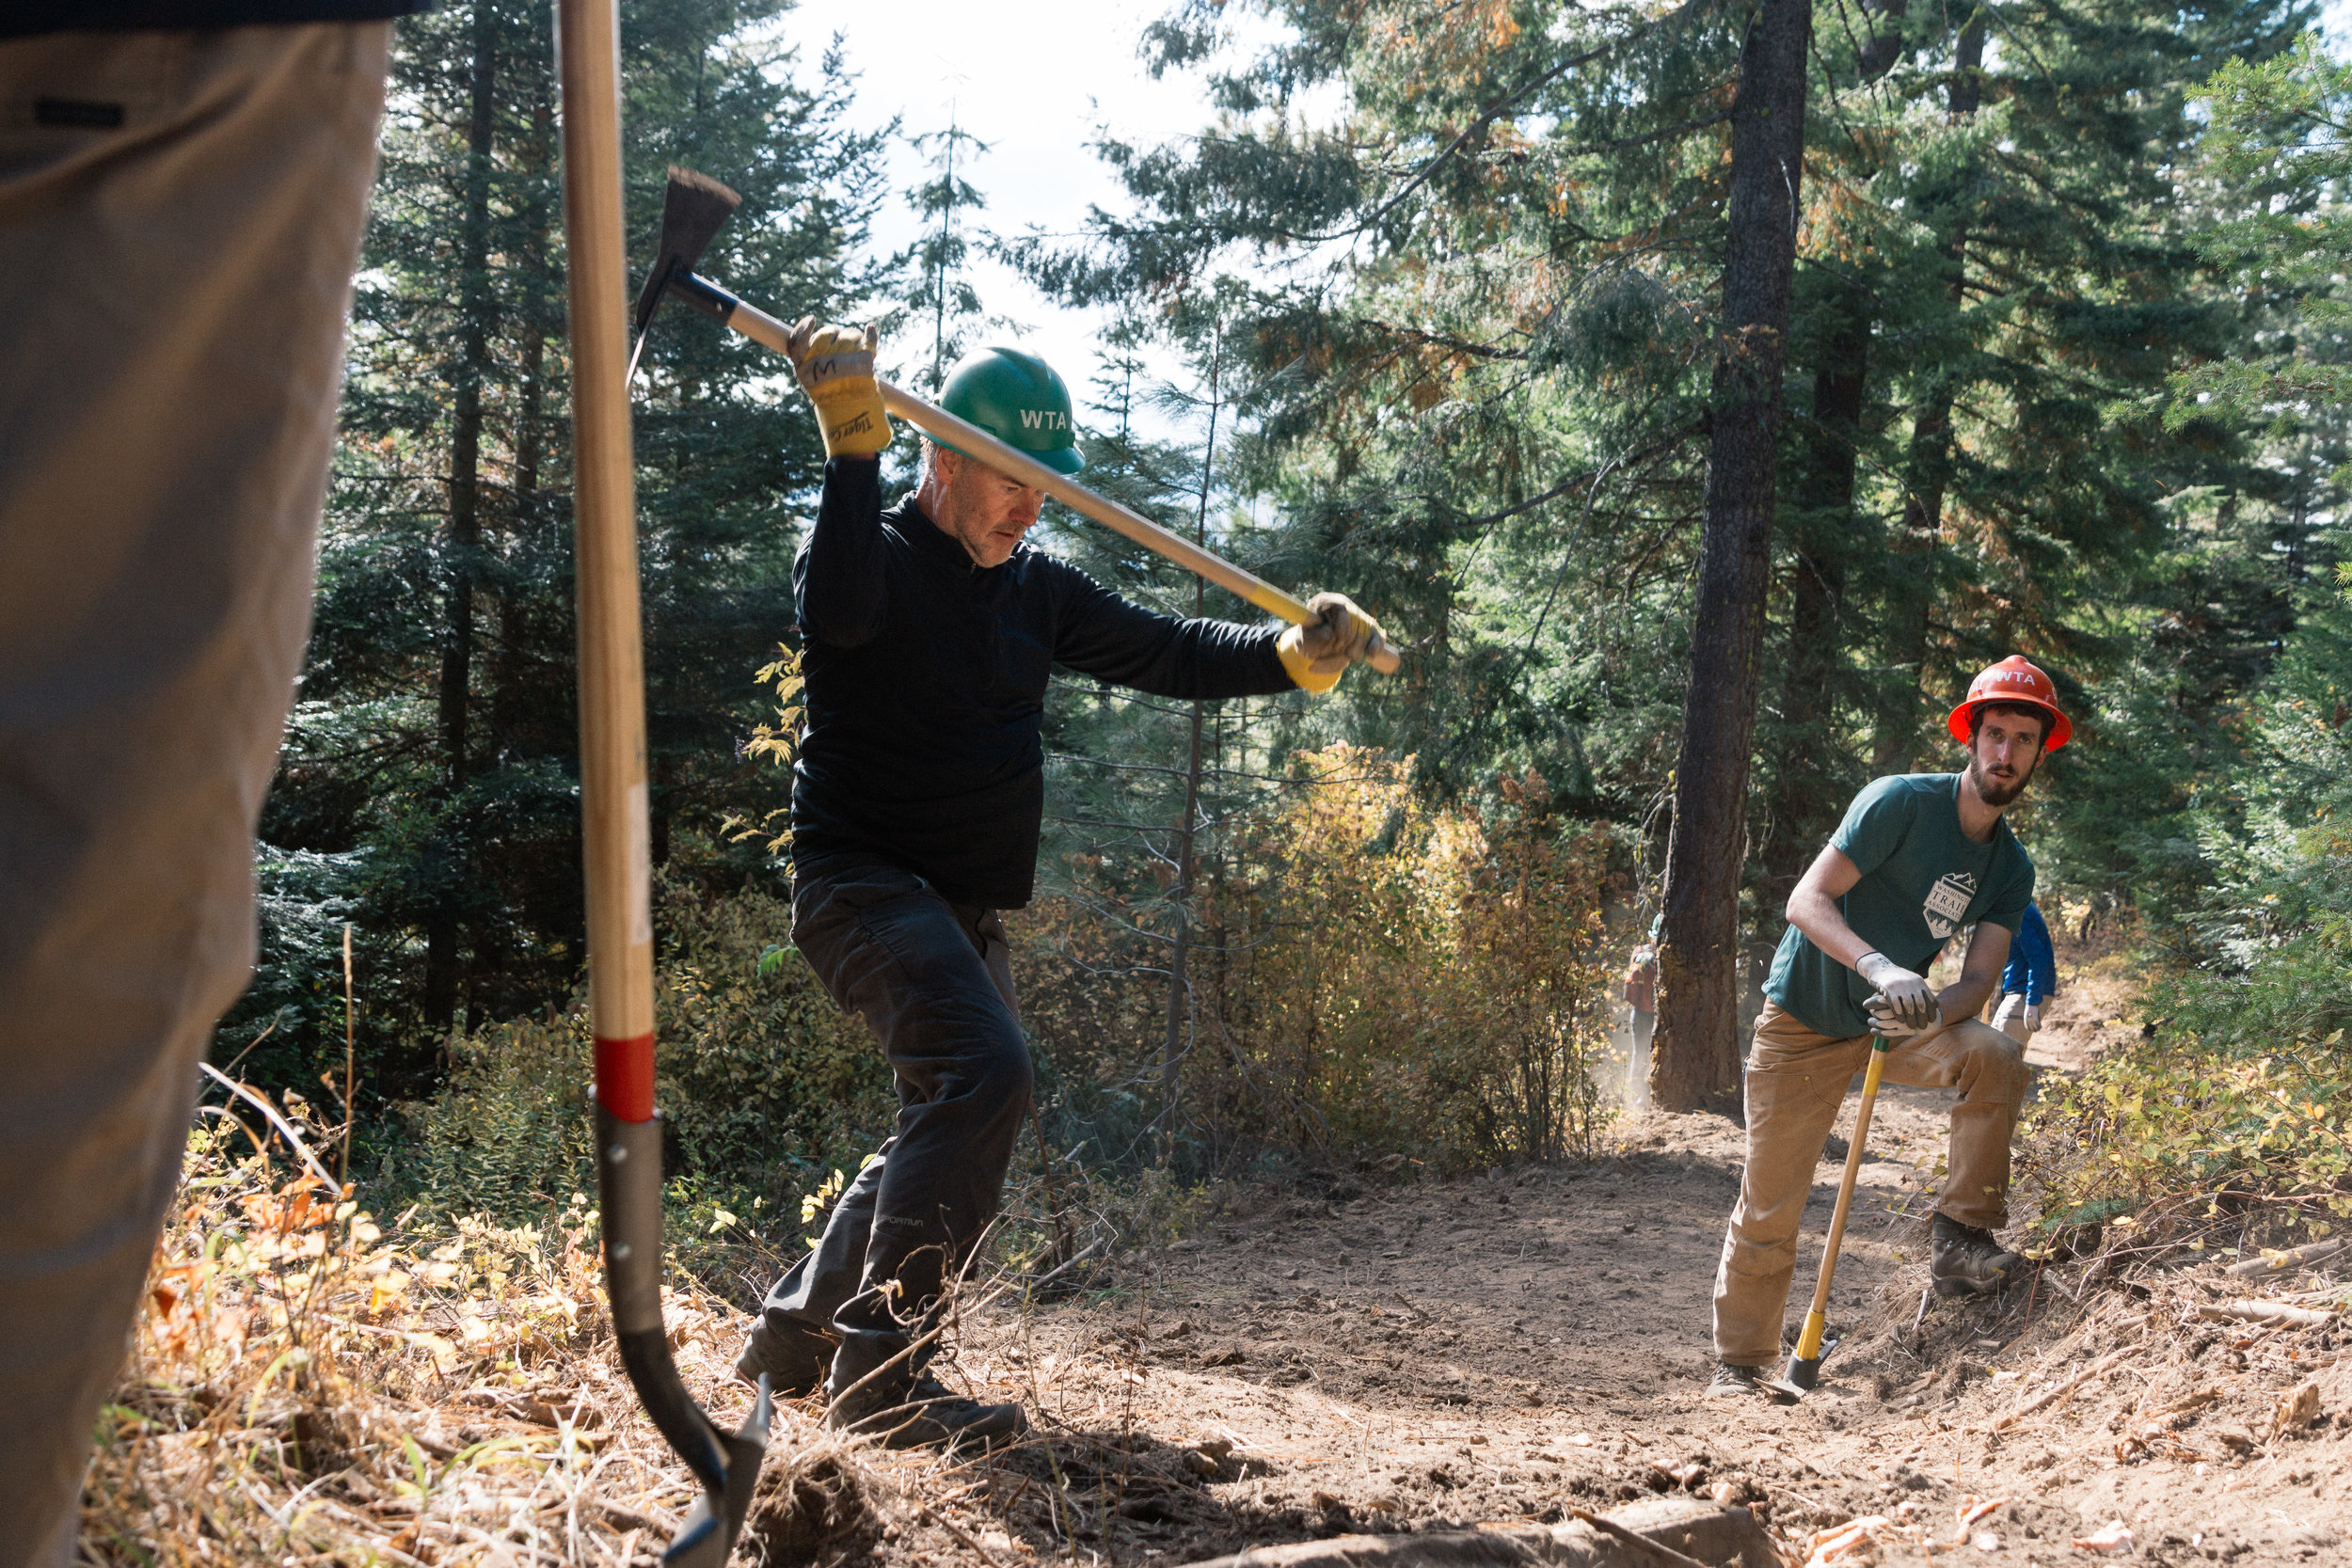 REI CEO Jerry Stritzke swings a tool while working on the first section of the new Towns to Teanaway trail system. Photo © Leslie Carvitto